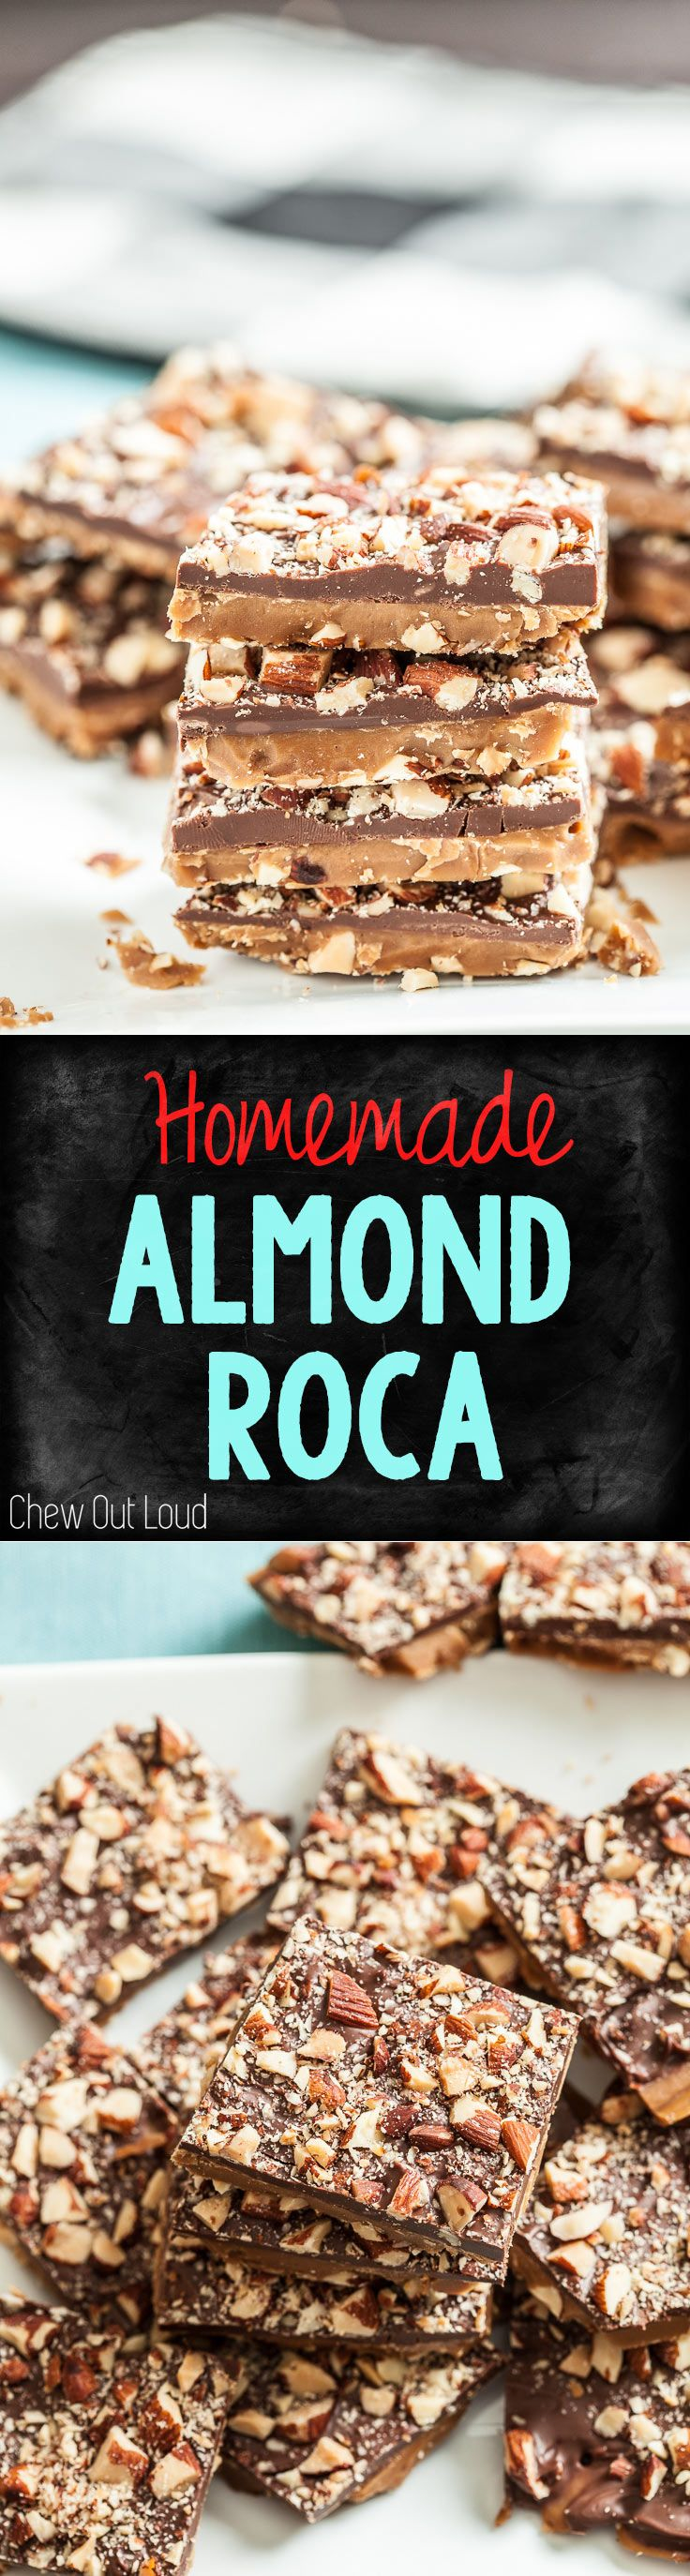 Homemade Almond Roca. Chocolate covered toffee with crushed almonds. Utterly awesome. #chocolate #candy #holiday